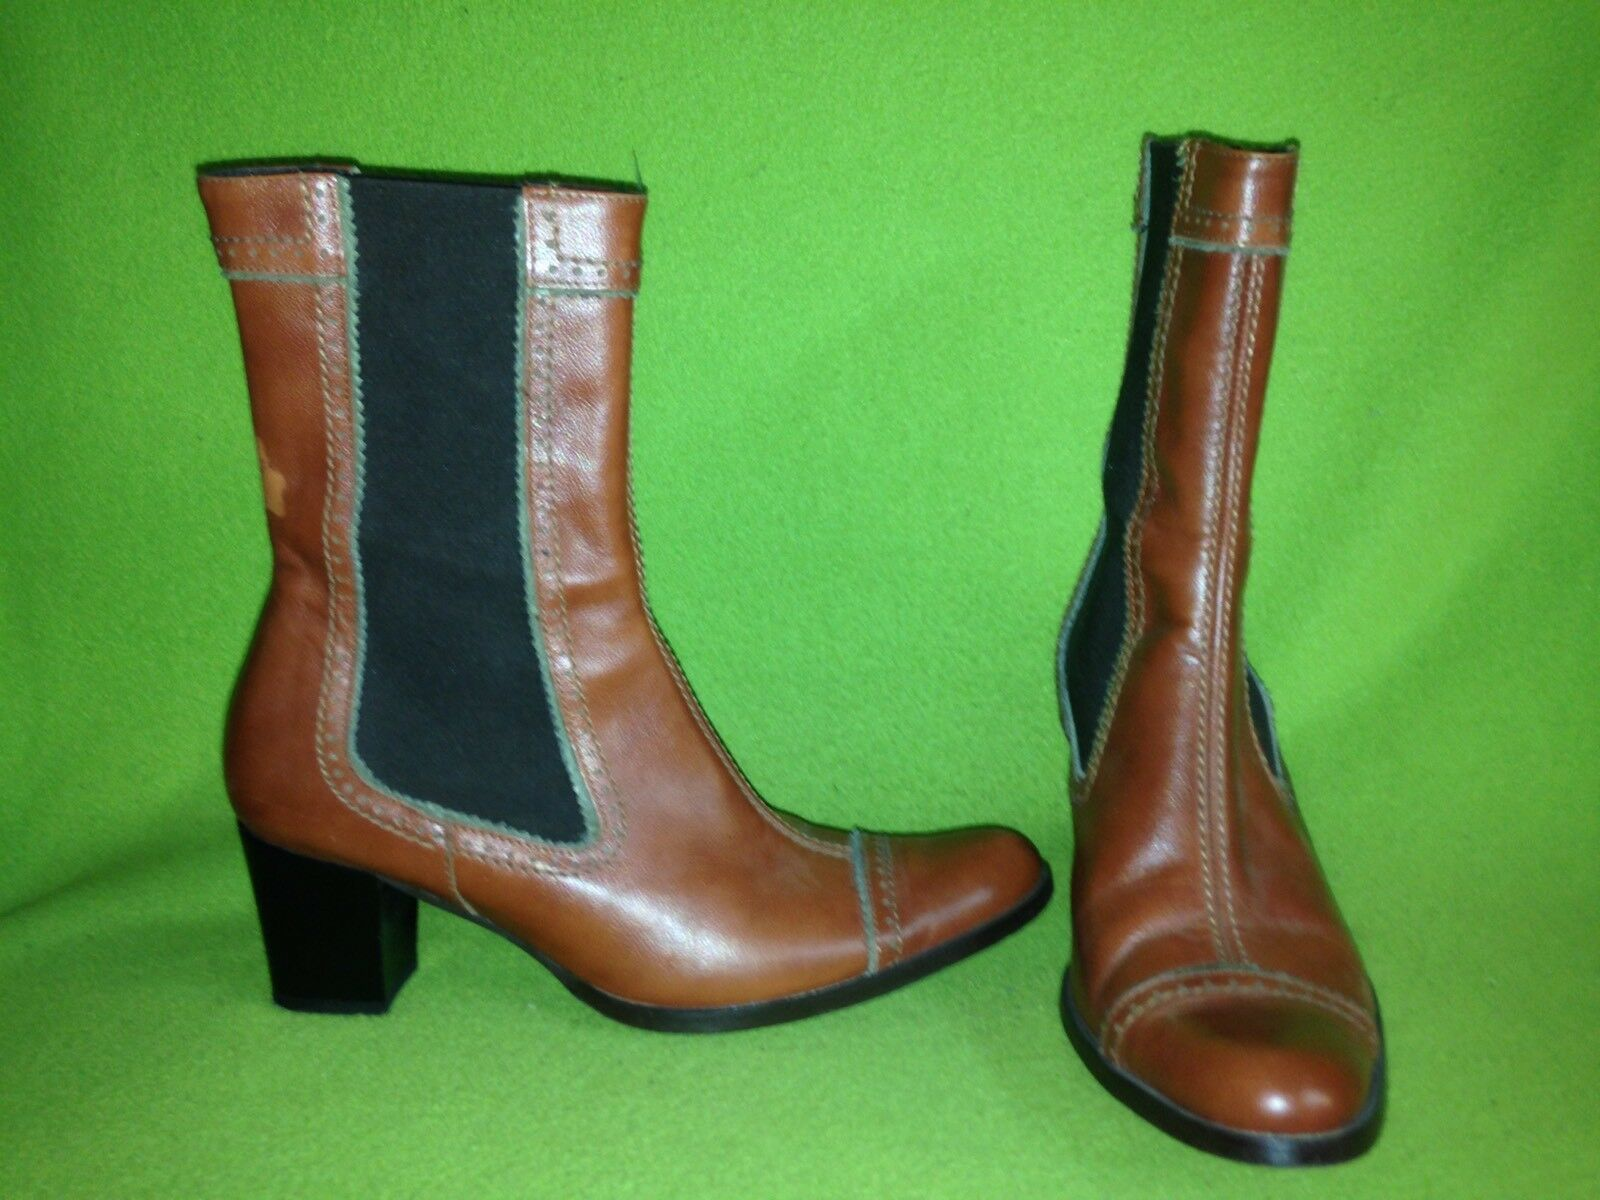 Reddish Brown Stephane de Raucourt Mid-Calf Boots with Elastic Sides Sides Sides 8 39 750cca